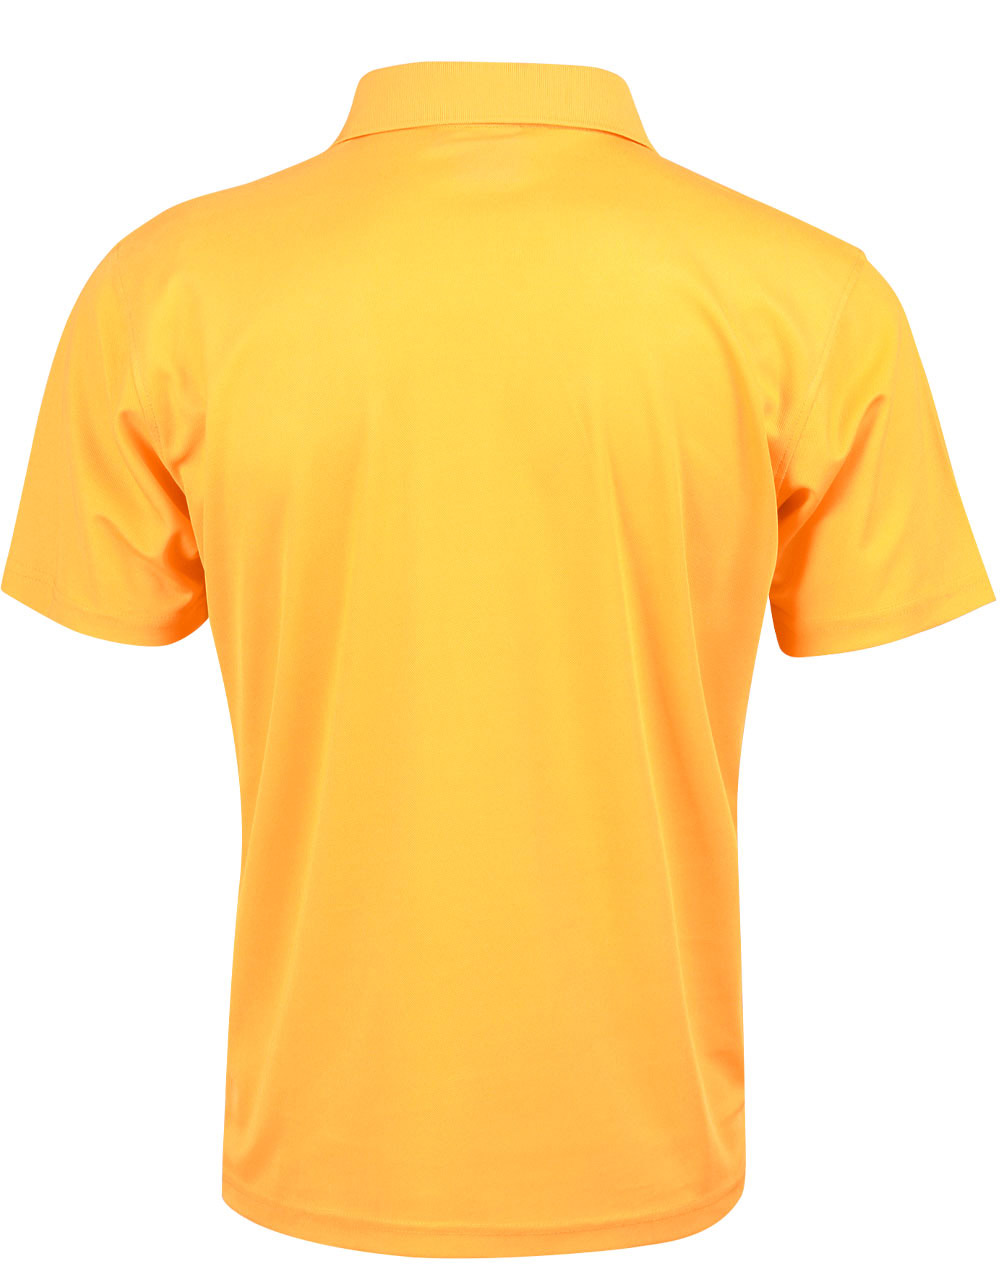 https://s3-ap-southeast-1.amazonaws.com/ws-imgs/POLOSHIRTS/PS81_Gold_Back.jpg